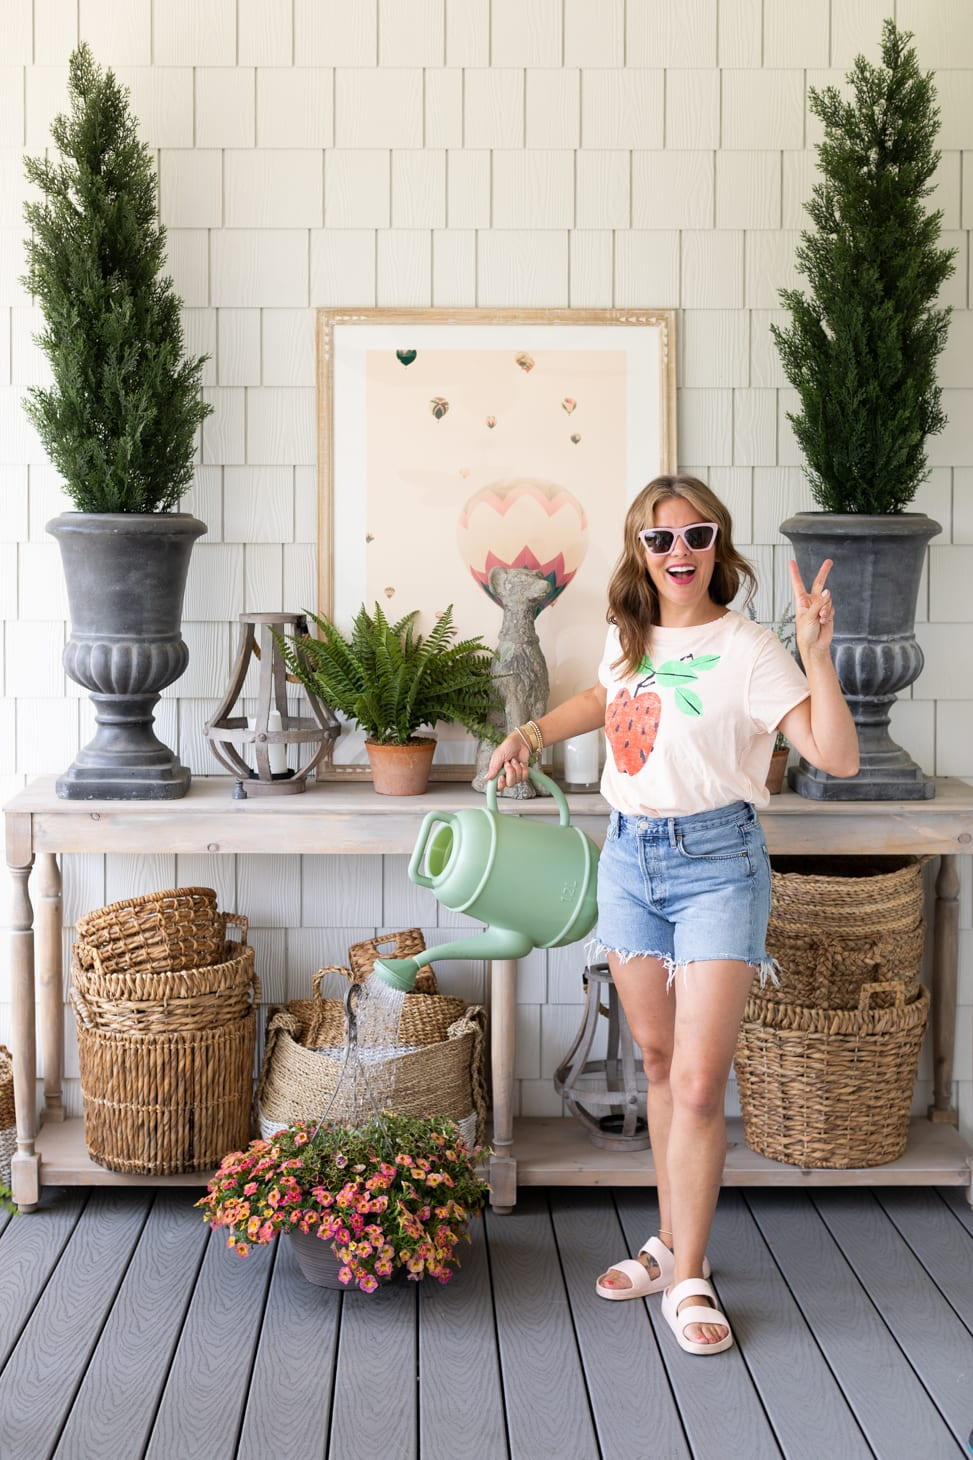 Jillian Harris watering a hanging basket of flowers on her porch wearing one of her Go-To Farm-Inspired Outfits.